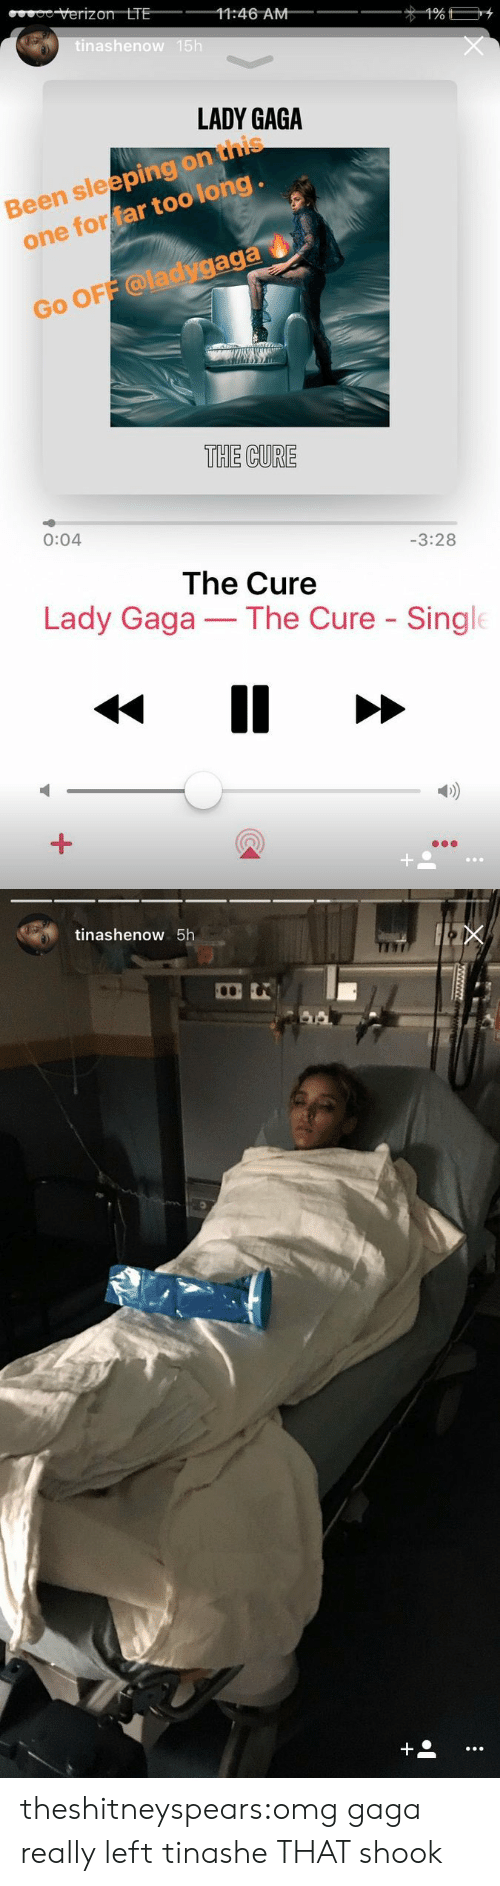 Lady Gaga, Omg, and Target: verizon LTE  1:46 AM  nashenow  LADY GAGA  Been sleeping on this  one for far too long  d  aga  Go OFF @ladyg  THE CURE  0:04  -3:28  The Cure  Lady Gaga-The Cure Single  D)   tinashenow 5h theshitneyspears:omg gaga really left tinashe THAT shook